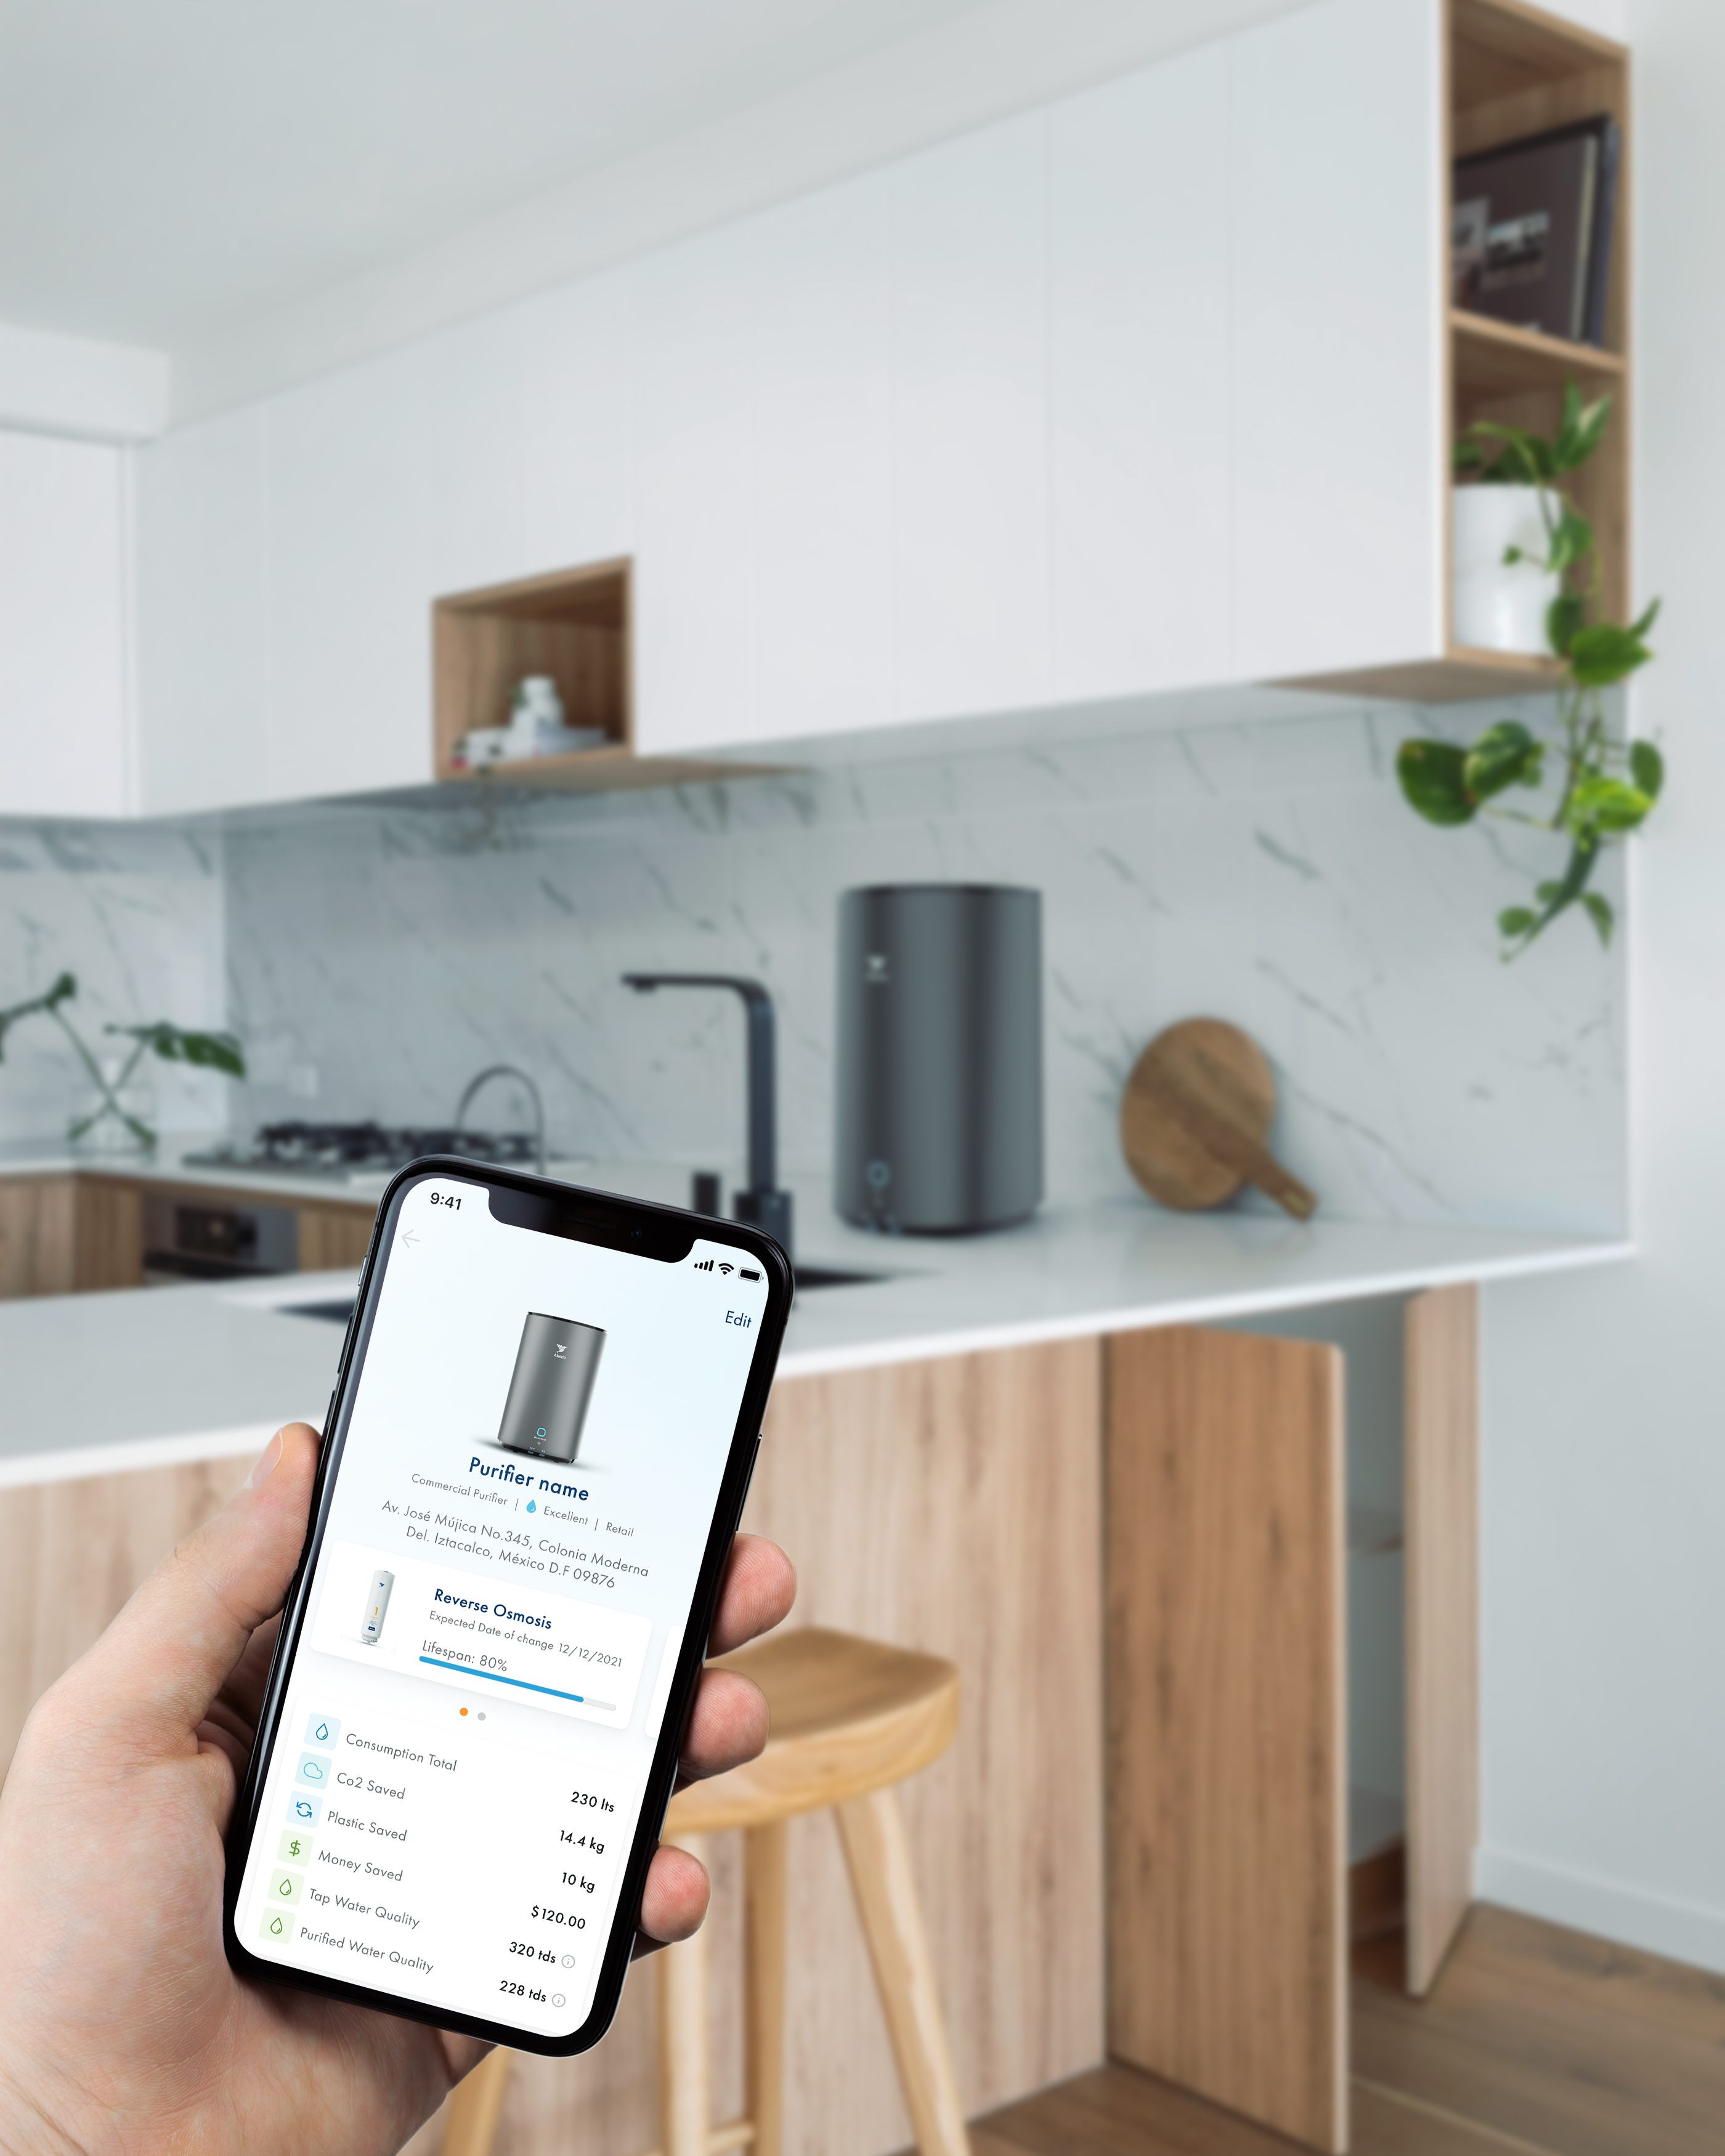 Holding a phone in the left hand with the Alxedo App opened, showing Water consumption statistic. An Alxedo Purifier is placed in a kitchen in the Background